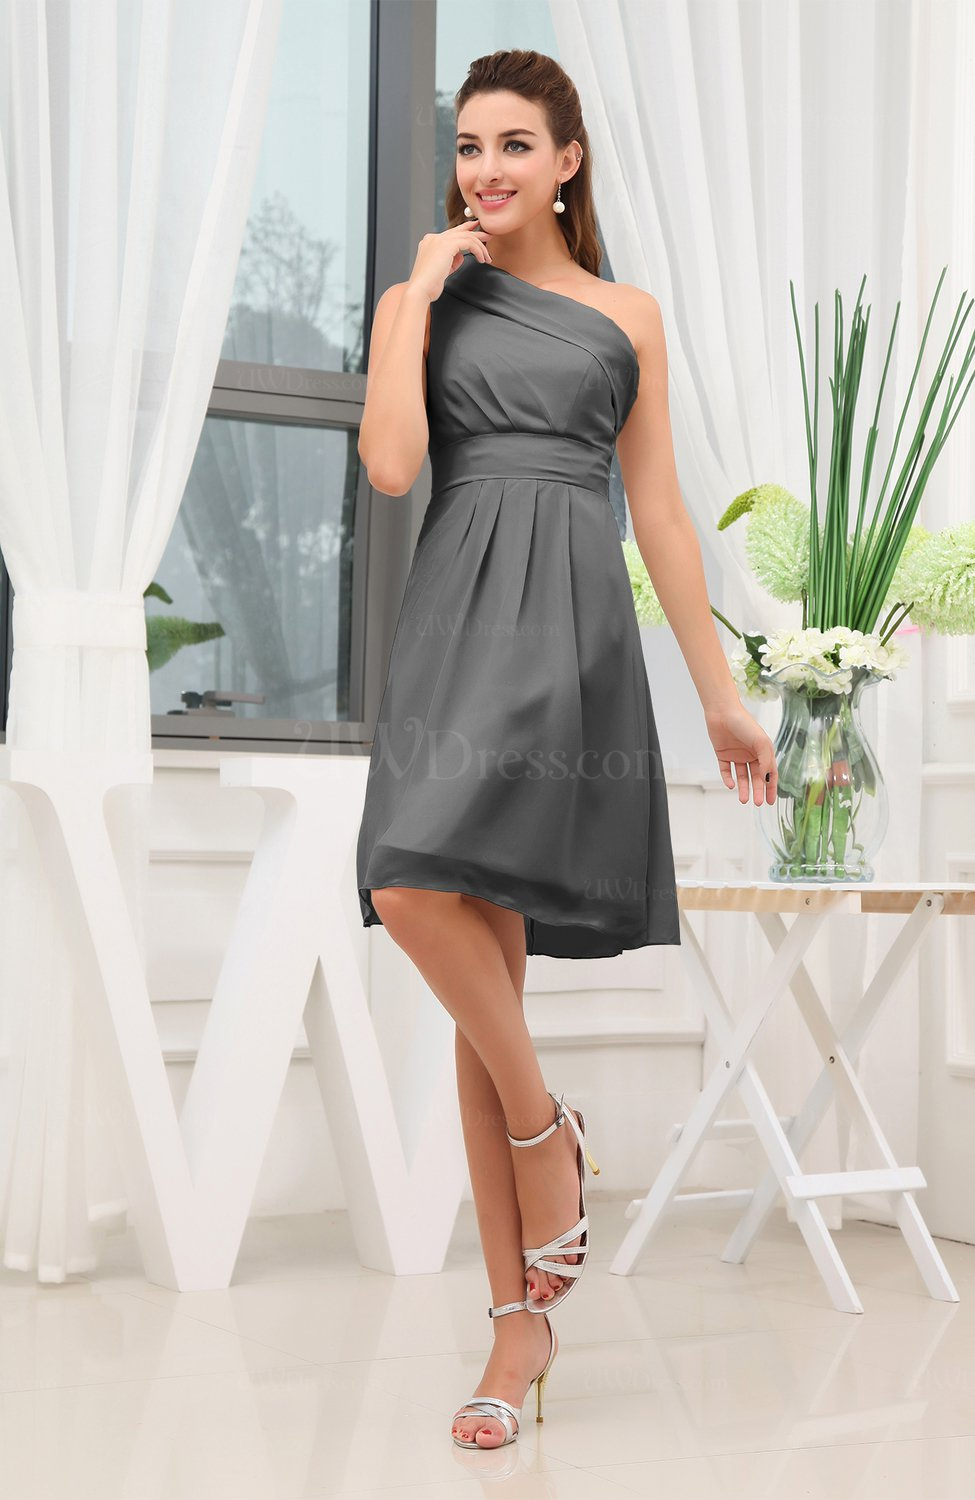 Wedding Guest Dresses - UWDress.com